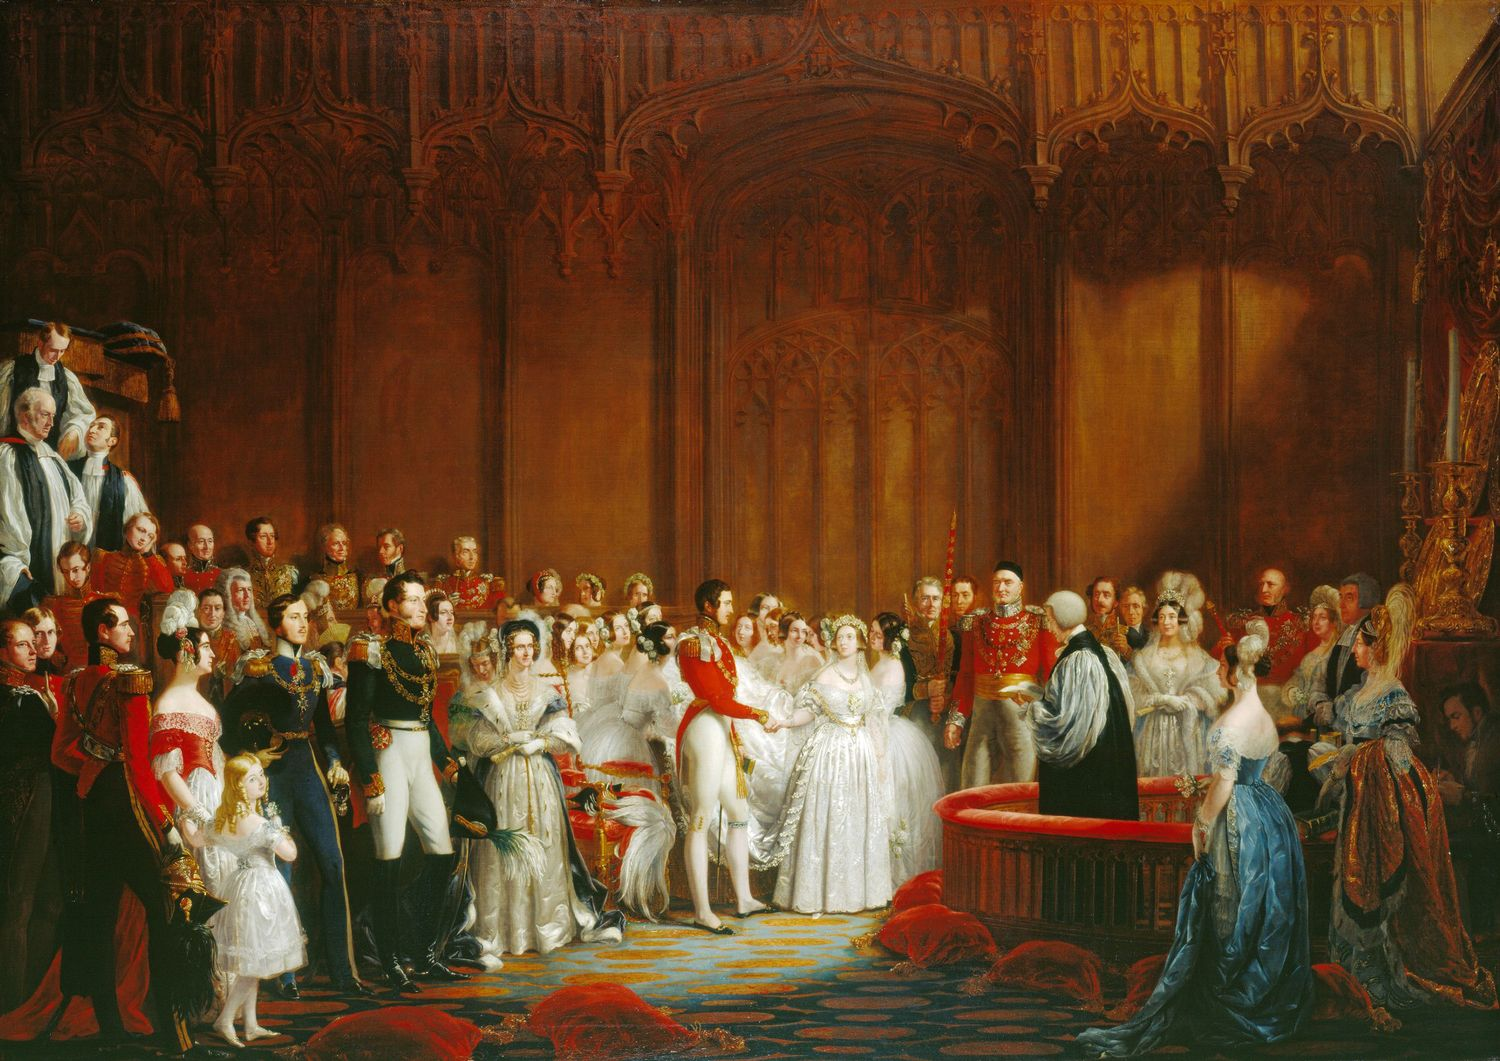 The Marriage of Queen Victoria and Prince Albert on February 10, 1840, painted by George Hayter.